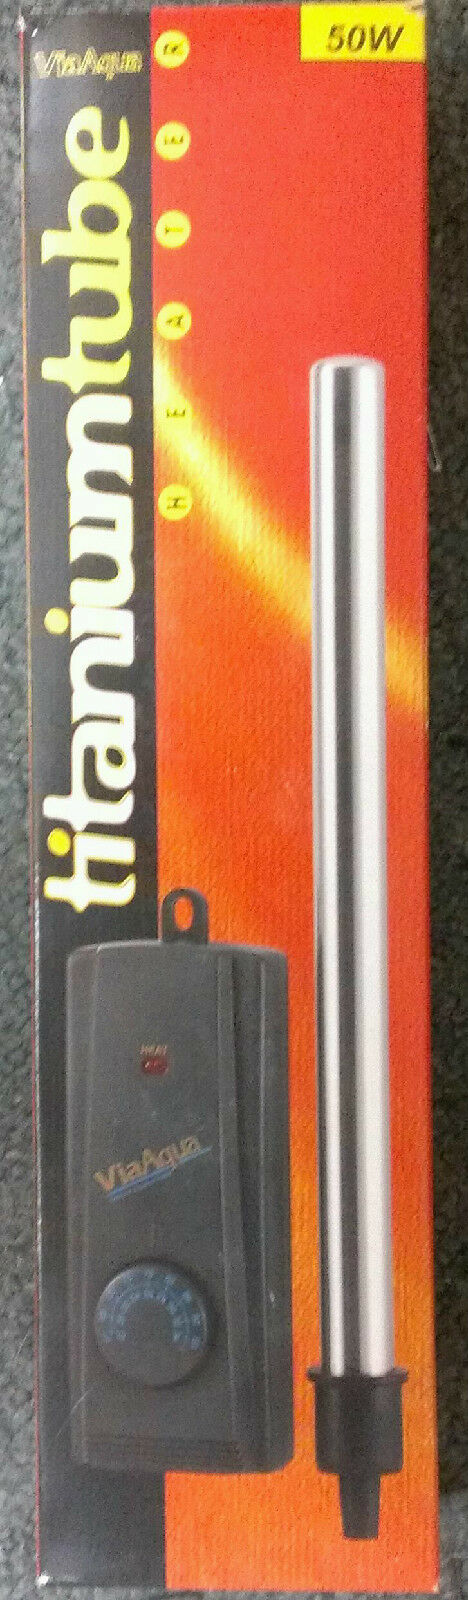 VIAAQUA TITANIUM TUBE AQUARIUM HEATER 50 WATT  SUBMERSIBLE